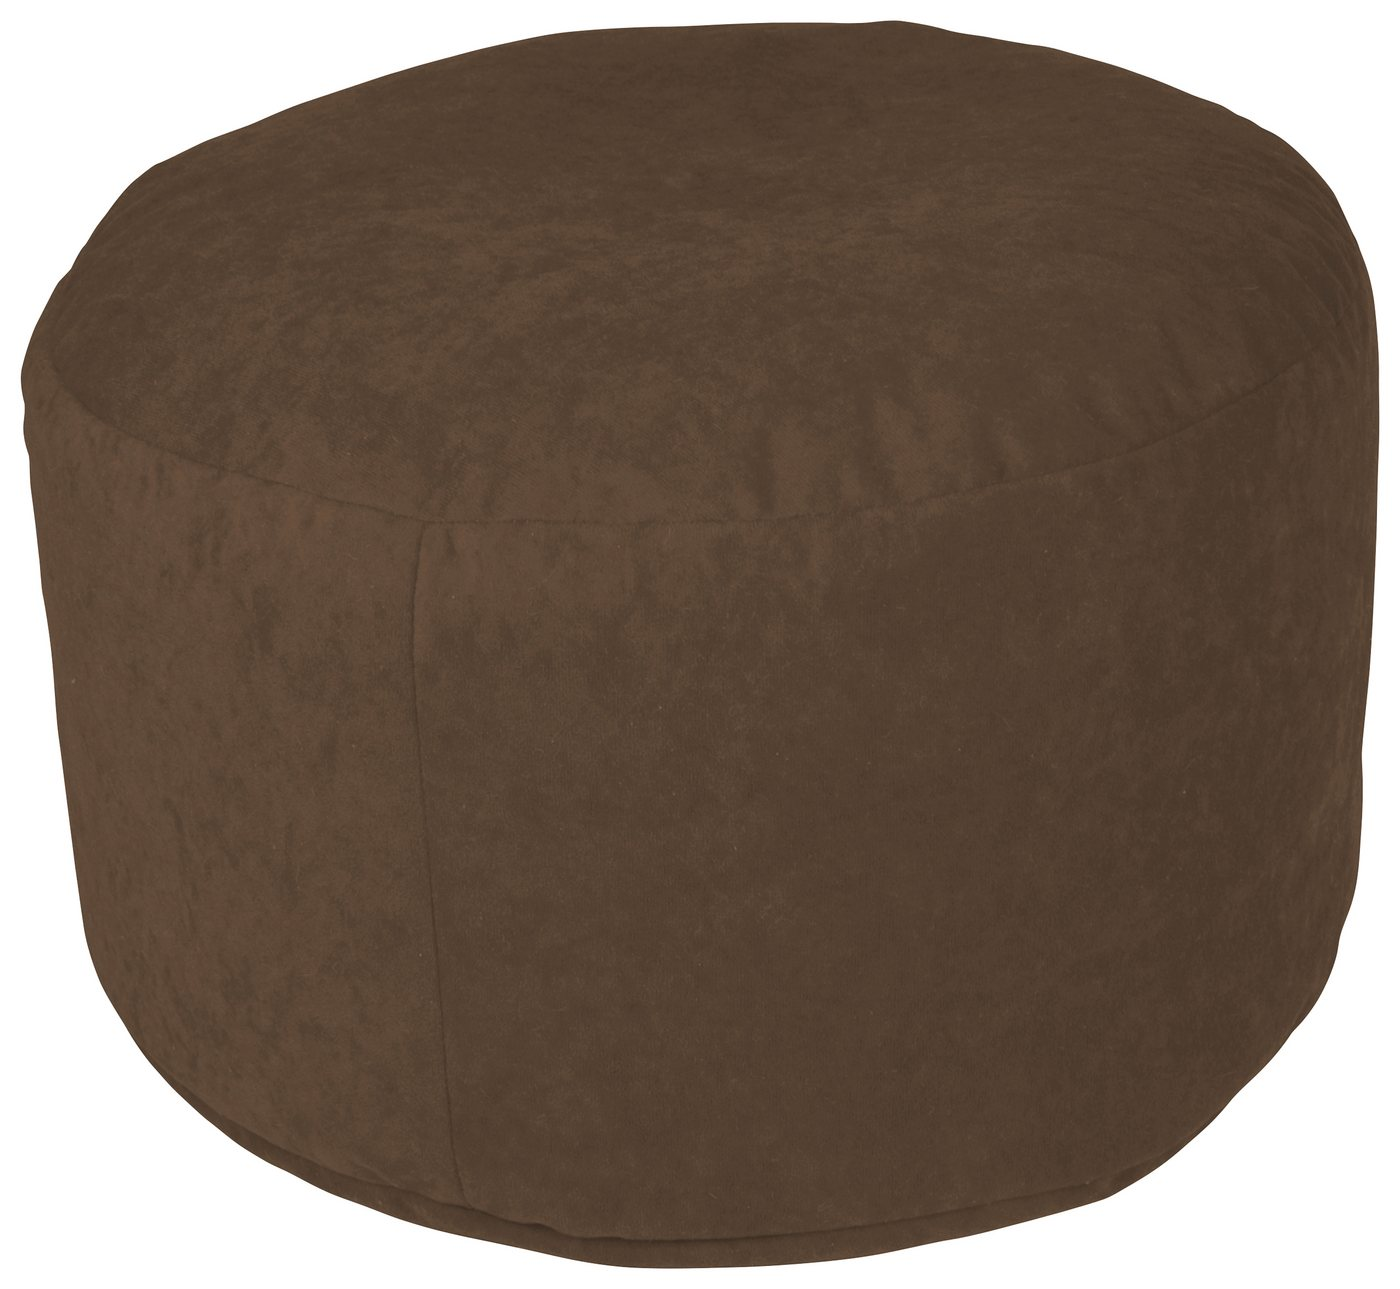 Home affaire Pouf, braun, dunkelbraun